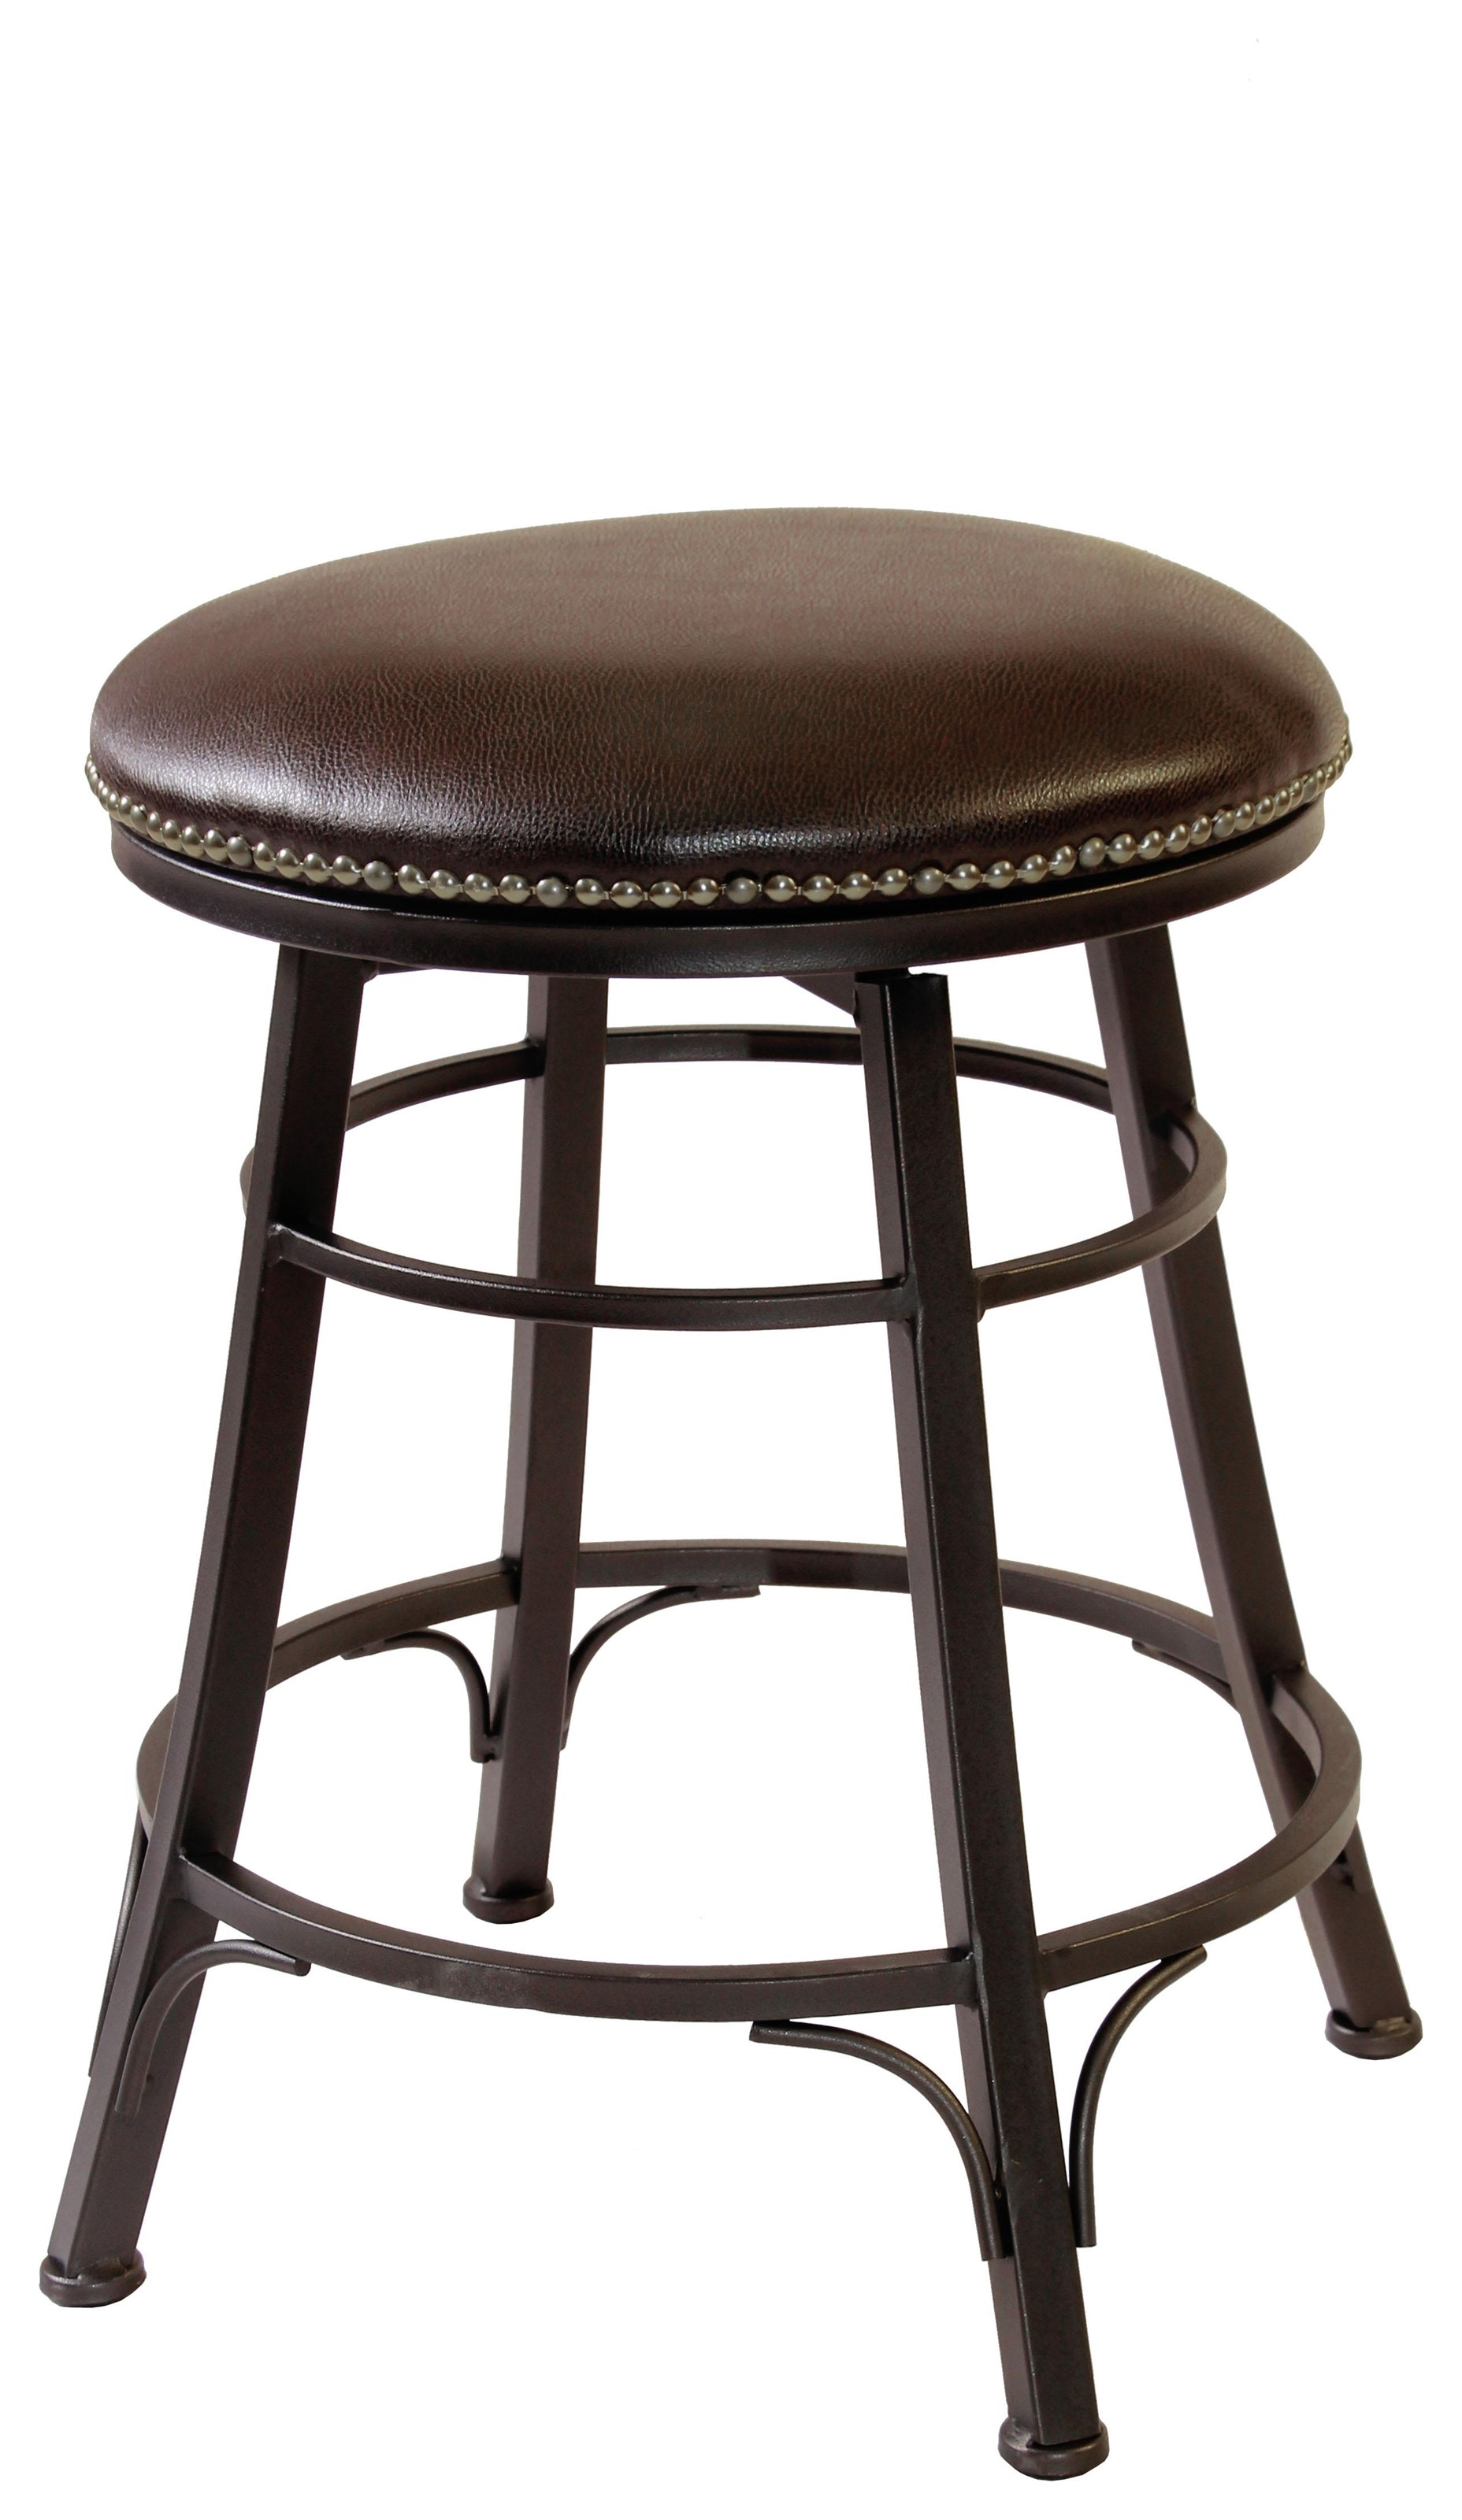 Trendy  Bali Counter Height Bar Stool at Walker's Furniture